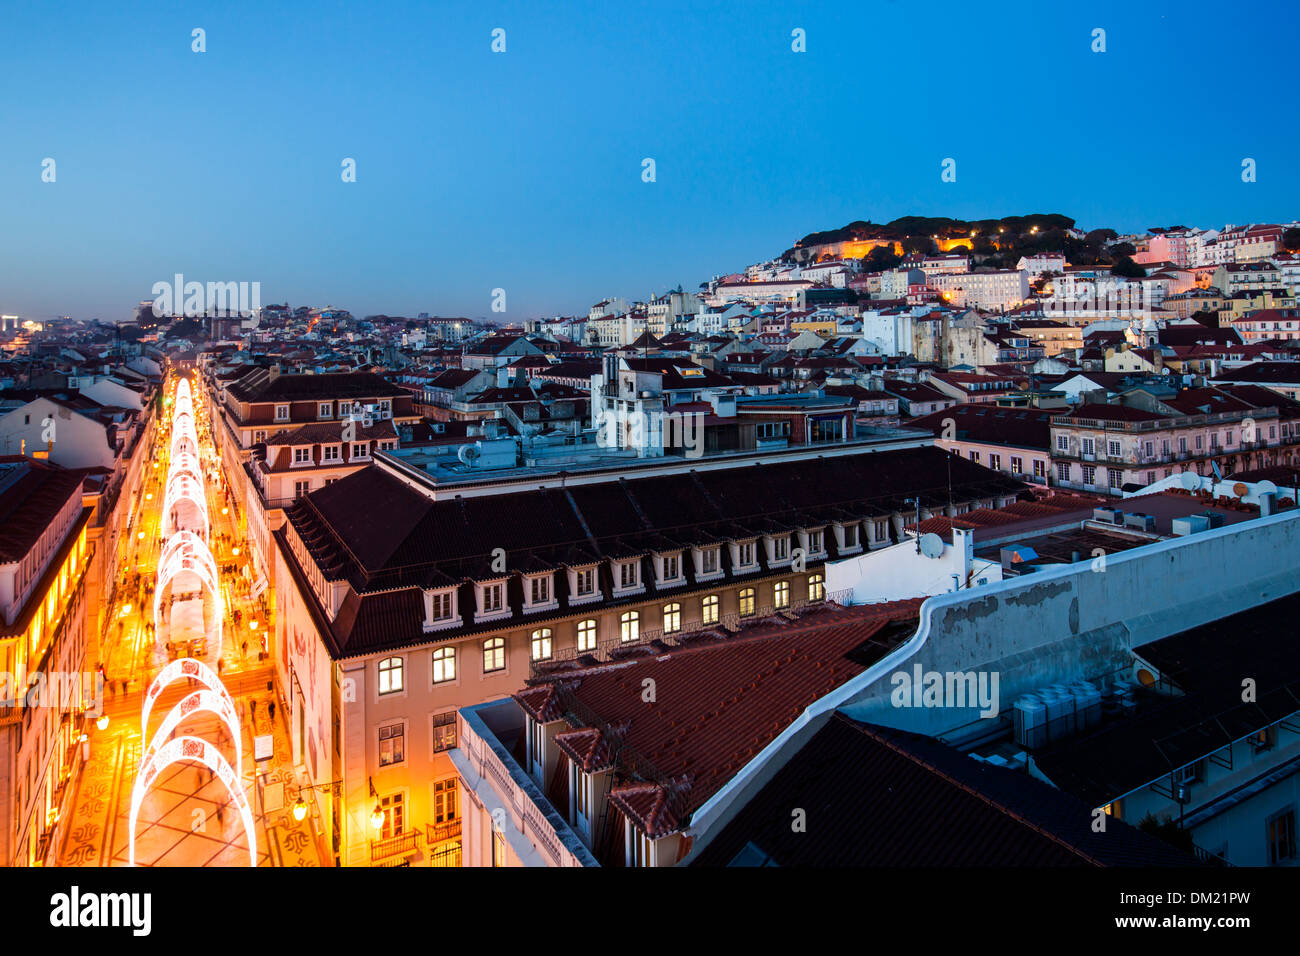 Castelo de Sao Jorge and the Christmas Lights in the Rua Augusta, Lisbon, Portugal, Europe - Stock Image